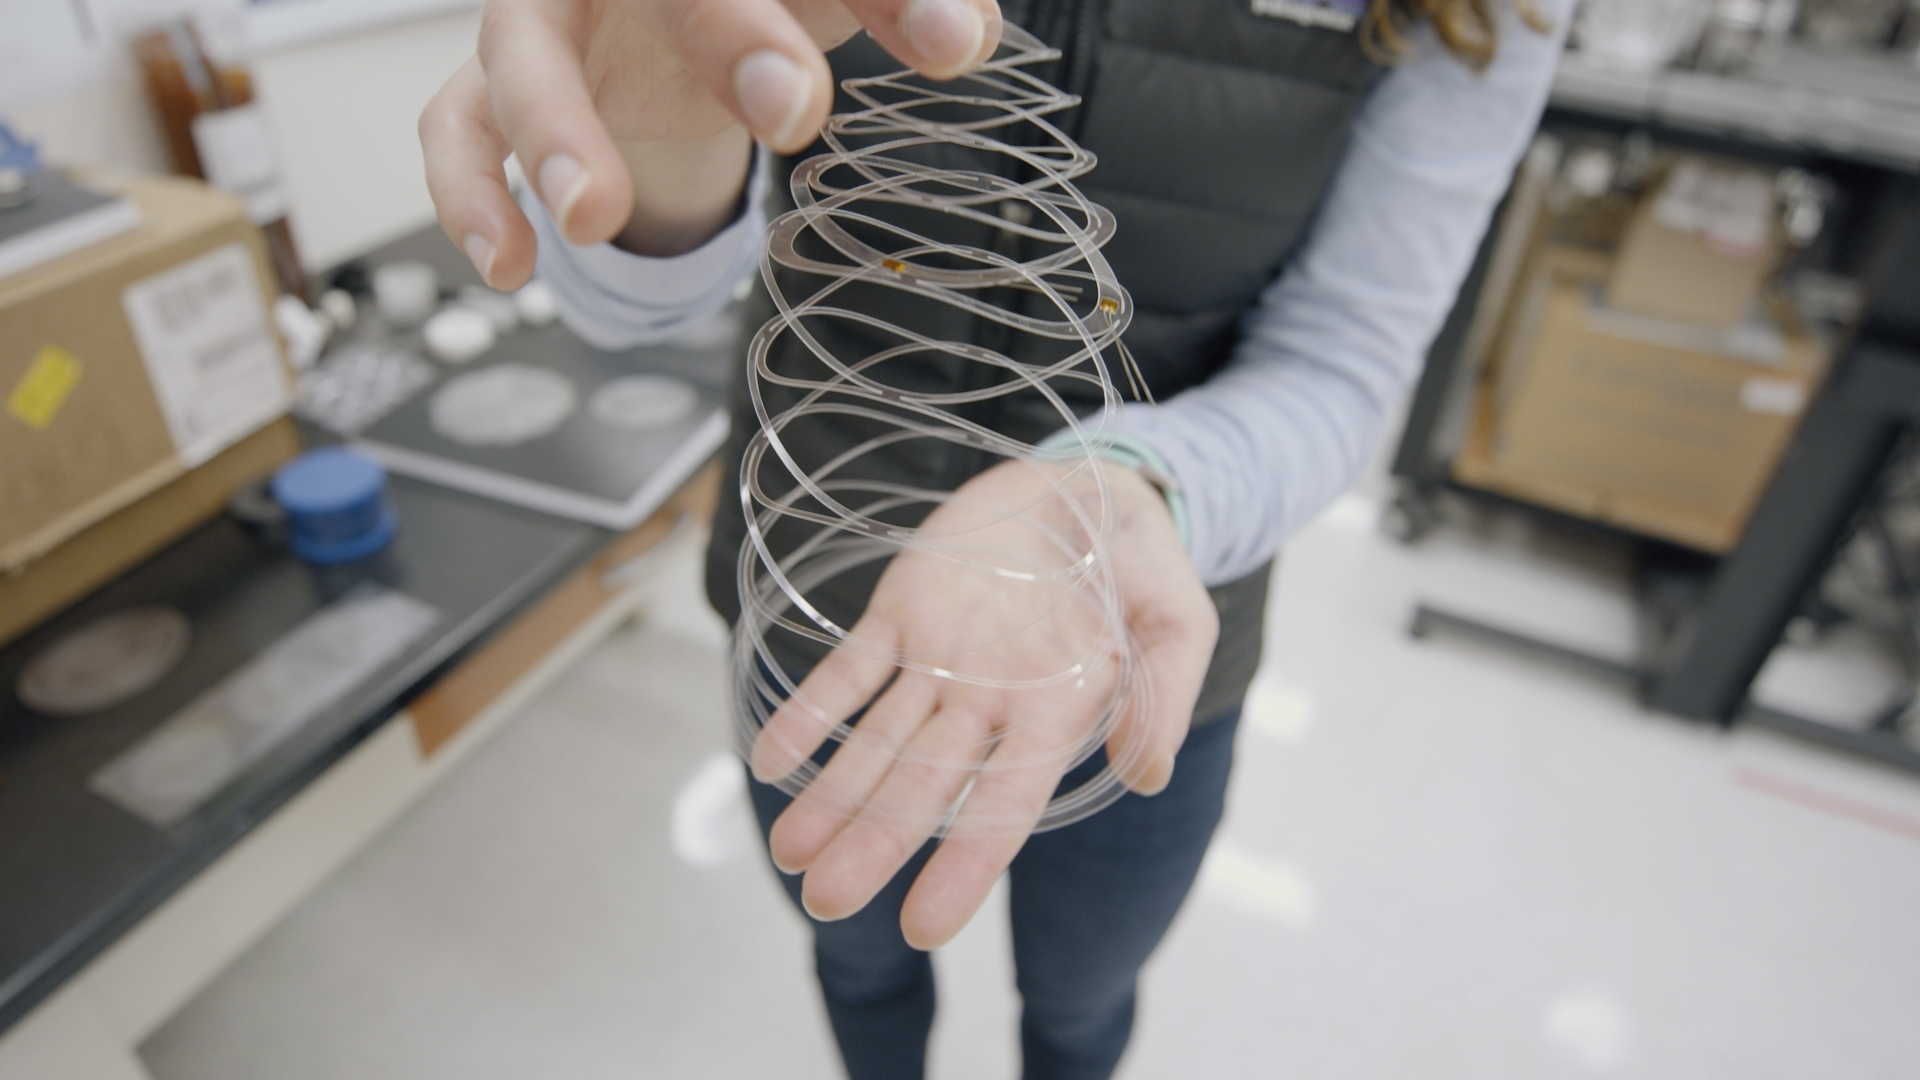 Erin Evke demonstrates how the kirigami cut pattern opens into a lacework. Image credit: Levi Hutmacher, Michigan Engineering